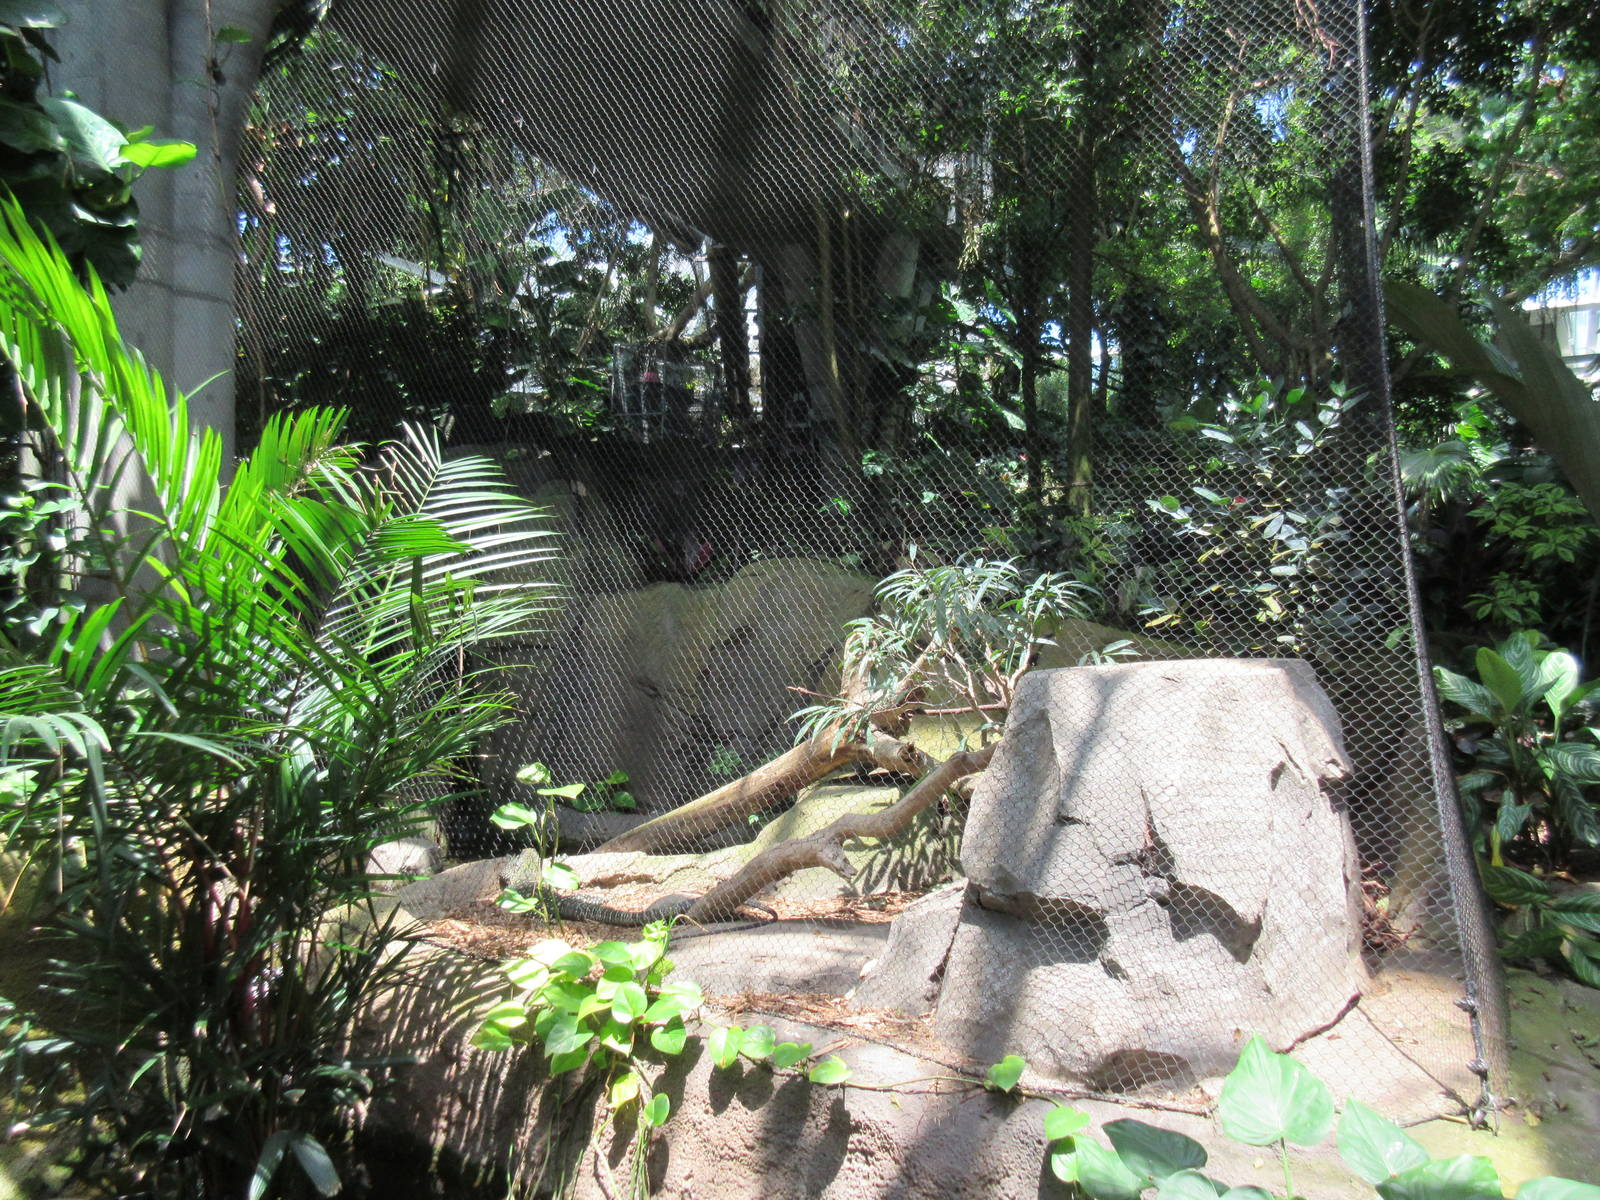 Rainforest Pyramid Crocodile Monitor Exhibit Zoochat